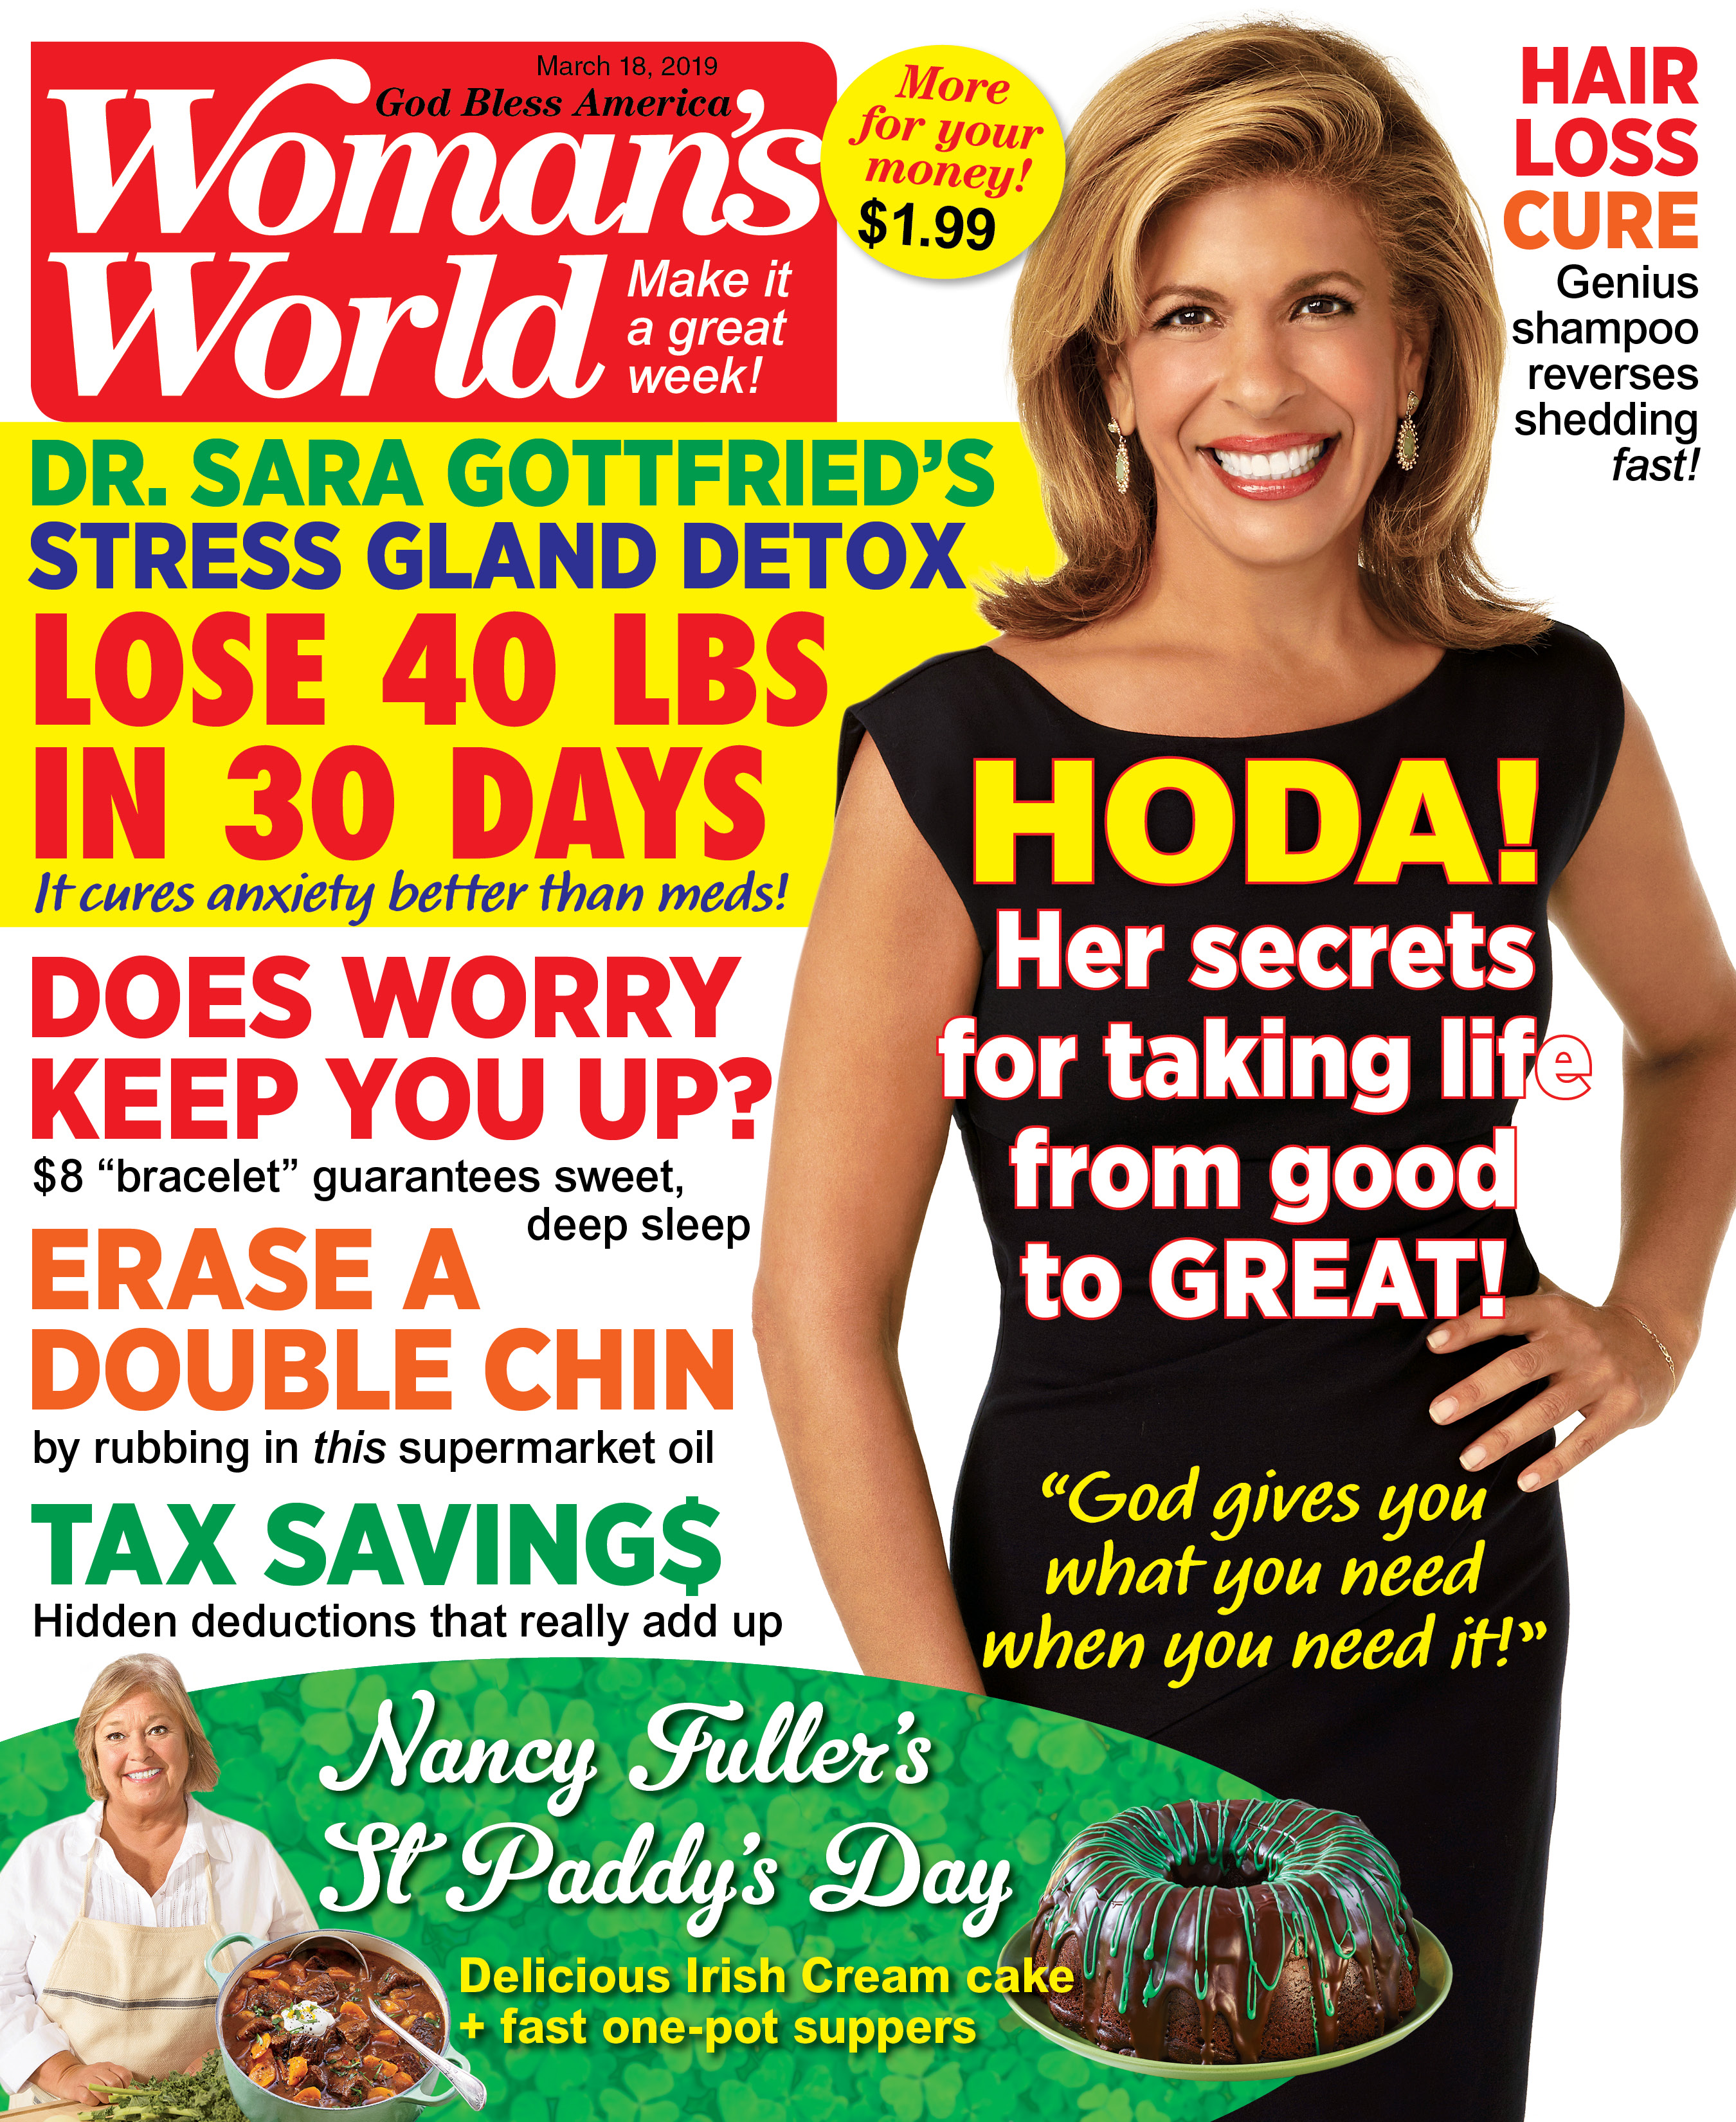 Hoda Kotb on the cover of Woman's World